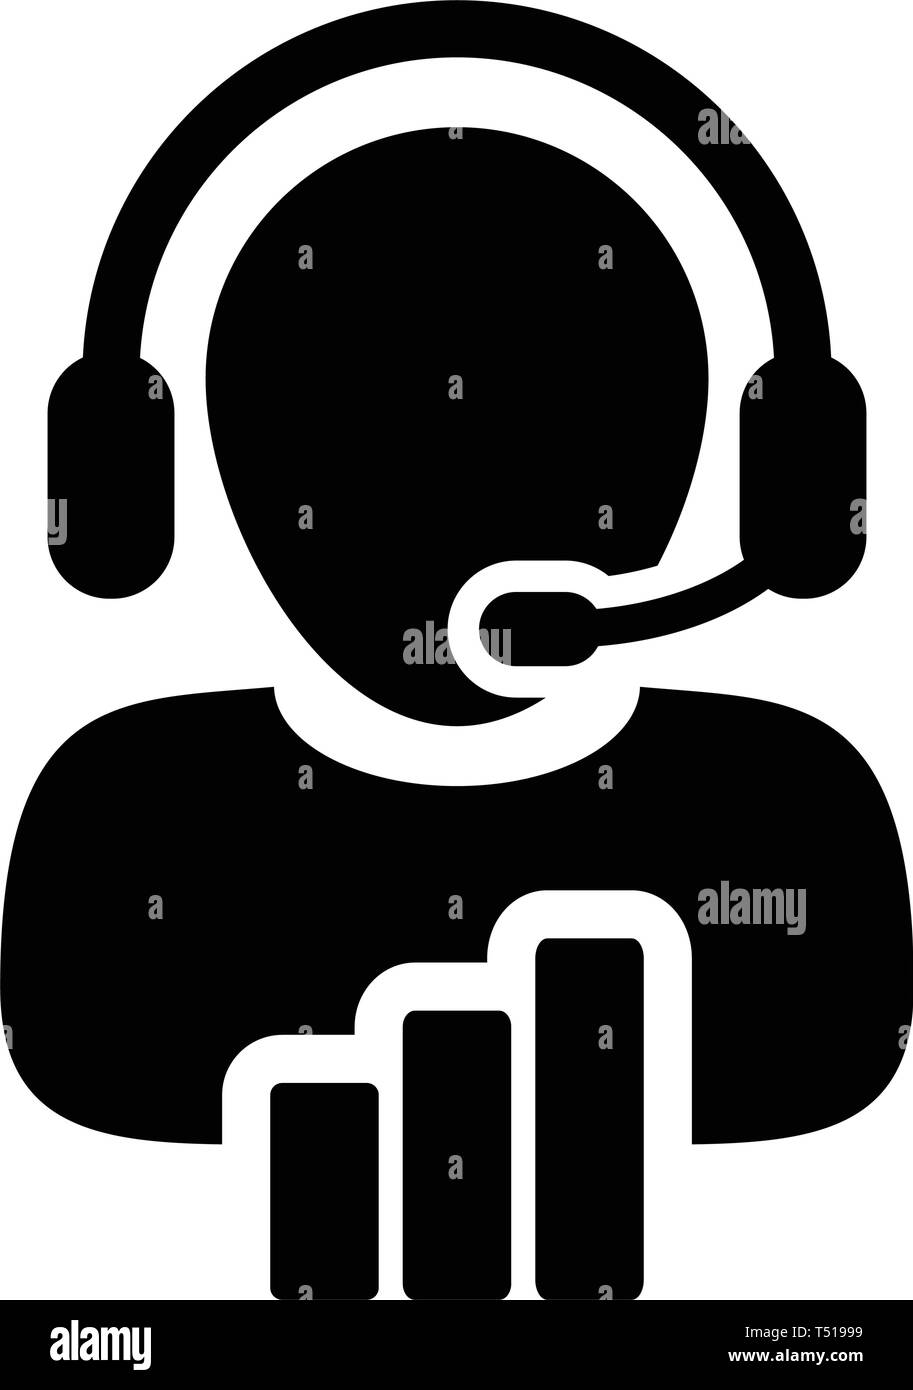 Customer helpline icon vector male data support service person profile avatar with headphone and bar graph for online assistant in glyph pictogram - Stock Image